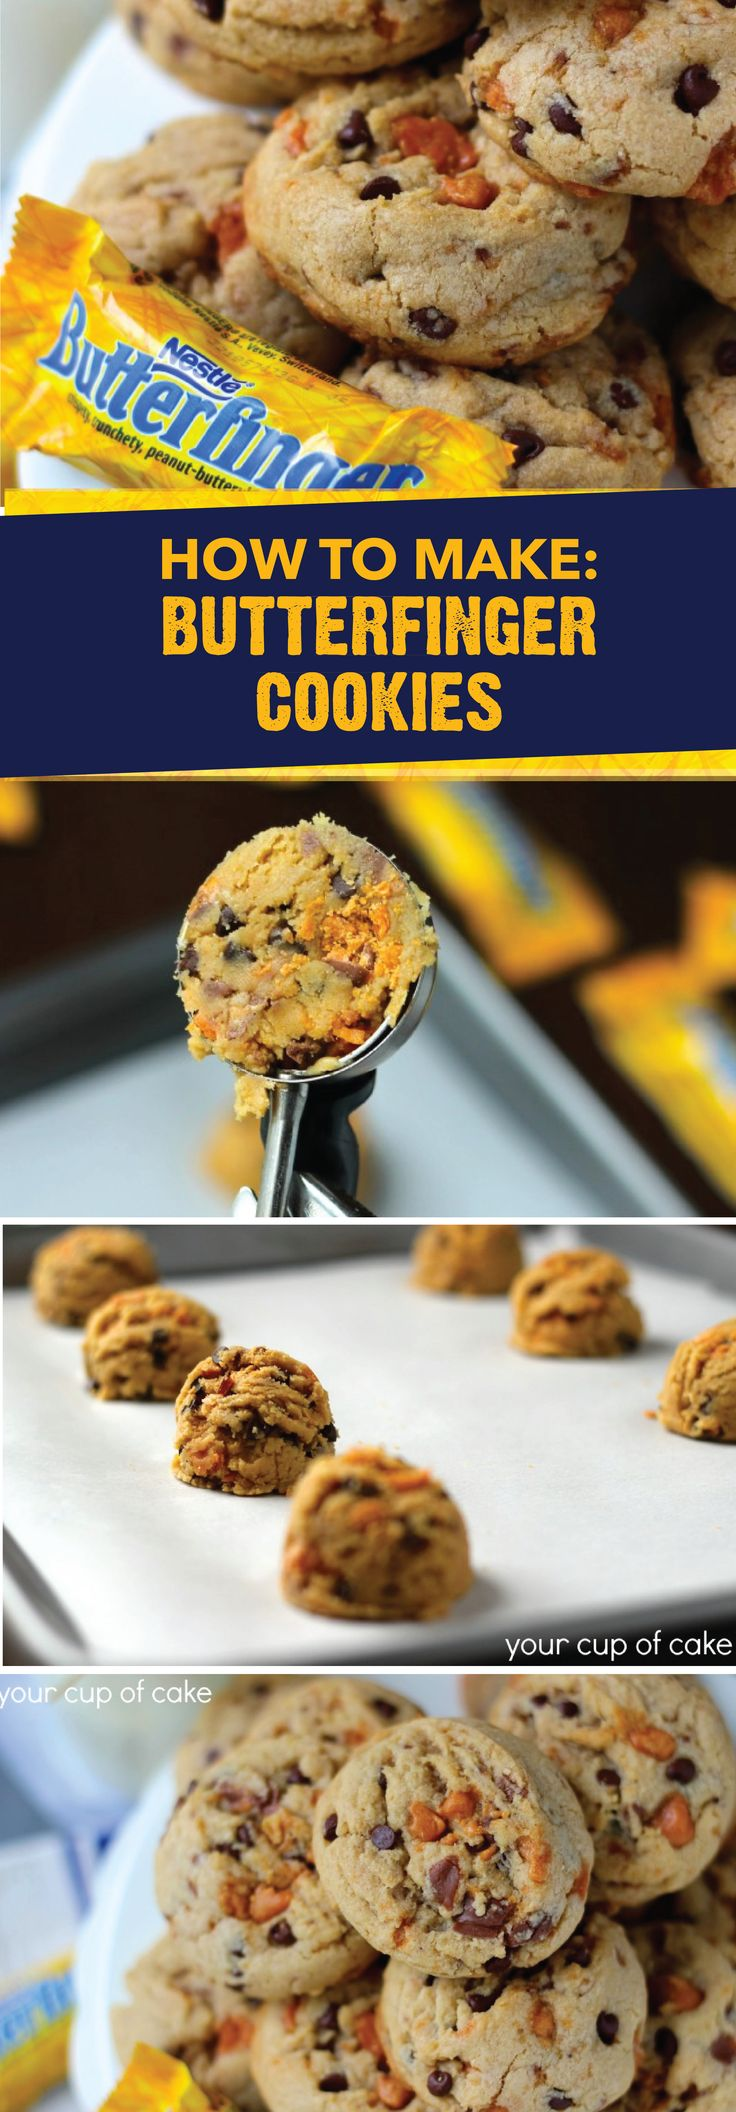 Rich, chewy, and oh-so delicious, these Butterfinger Cookies are almost too good to be true! BUTTERFINGER® Fun Size candy bars add a crispety, crunchety, peanut-buttery flavor to this classic dessert recipe. Serve these homemade cookies with a cold glass of milk for the ultimate way to end your day.